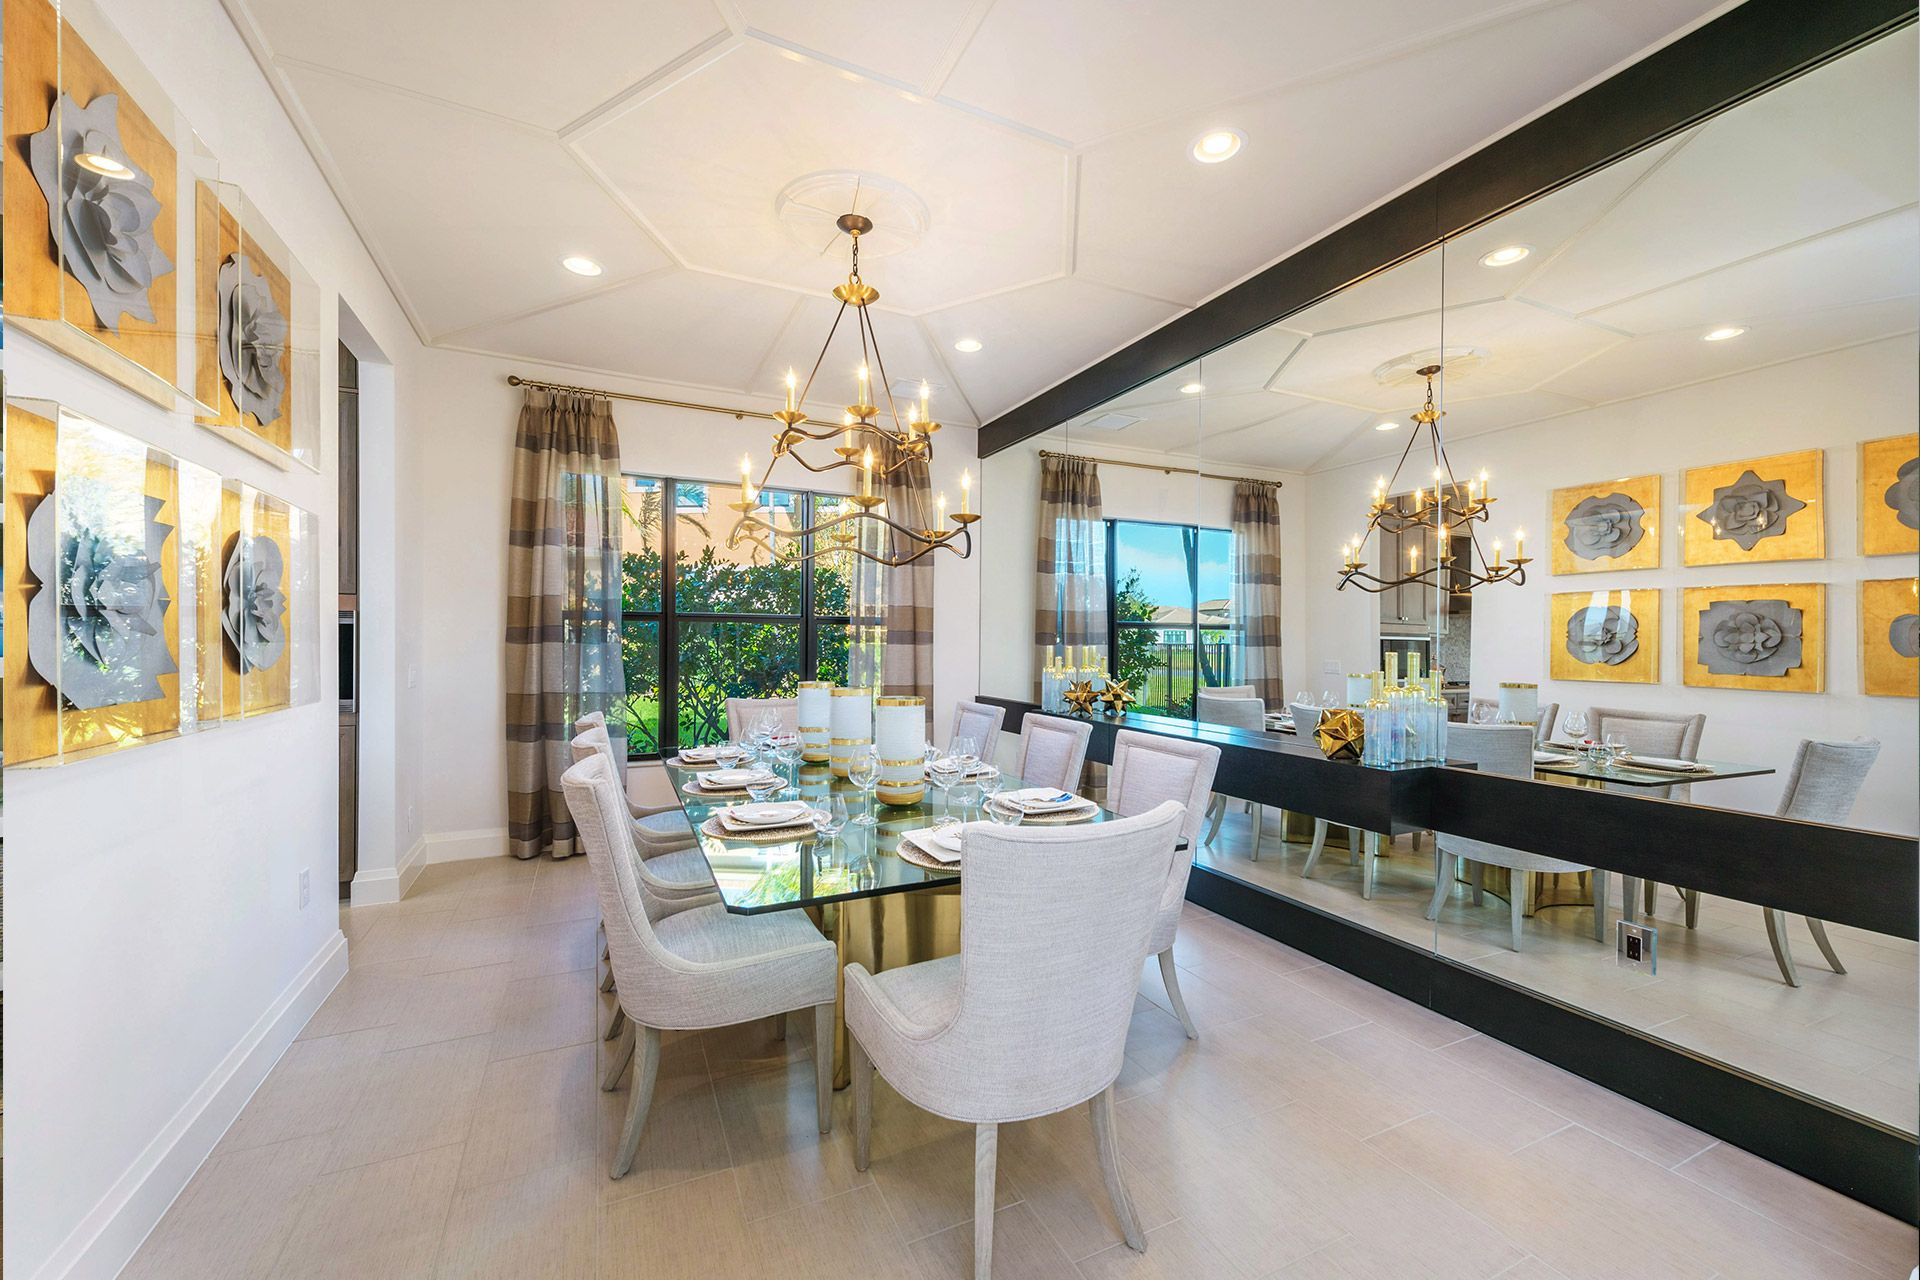 Living Area featured in the Bassano Grande Contemporary By GL Homes in Palm Beach County, FL